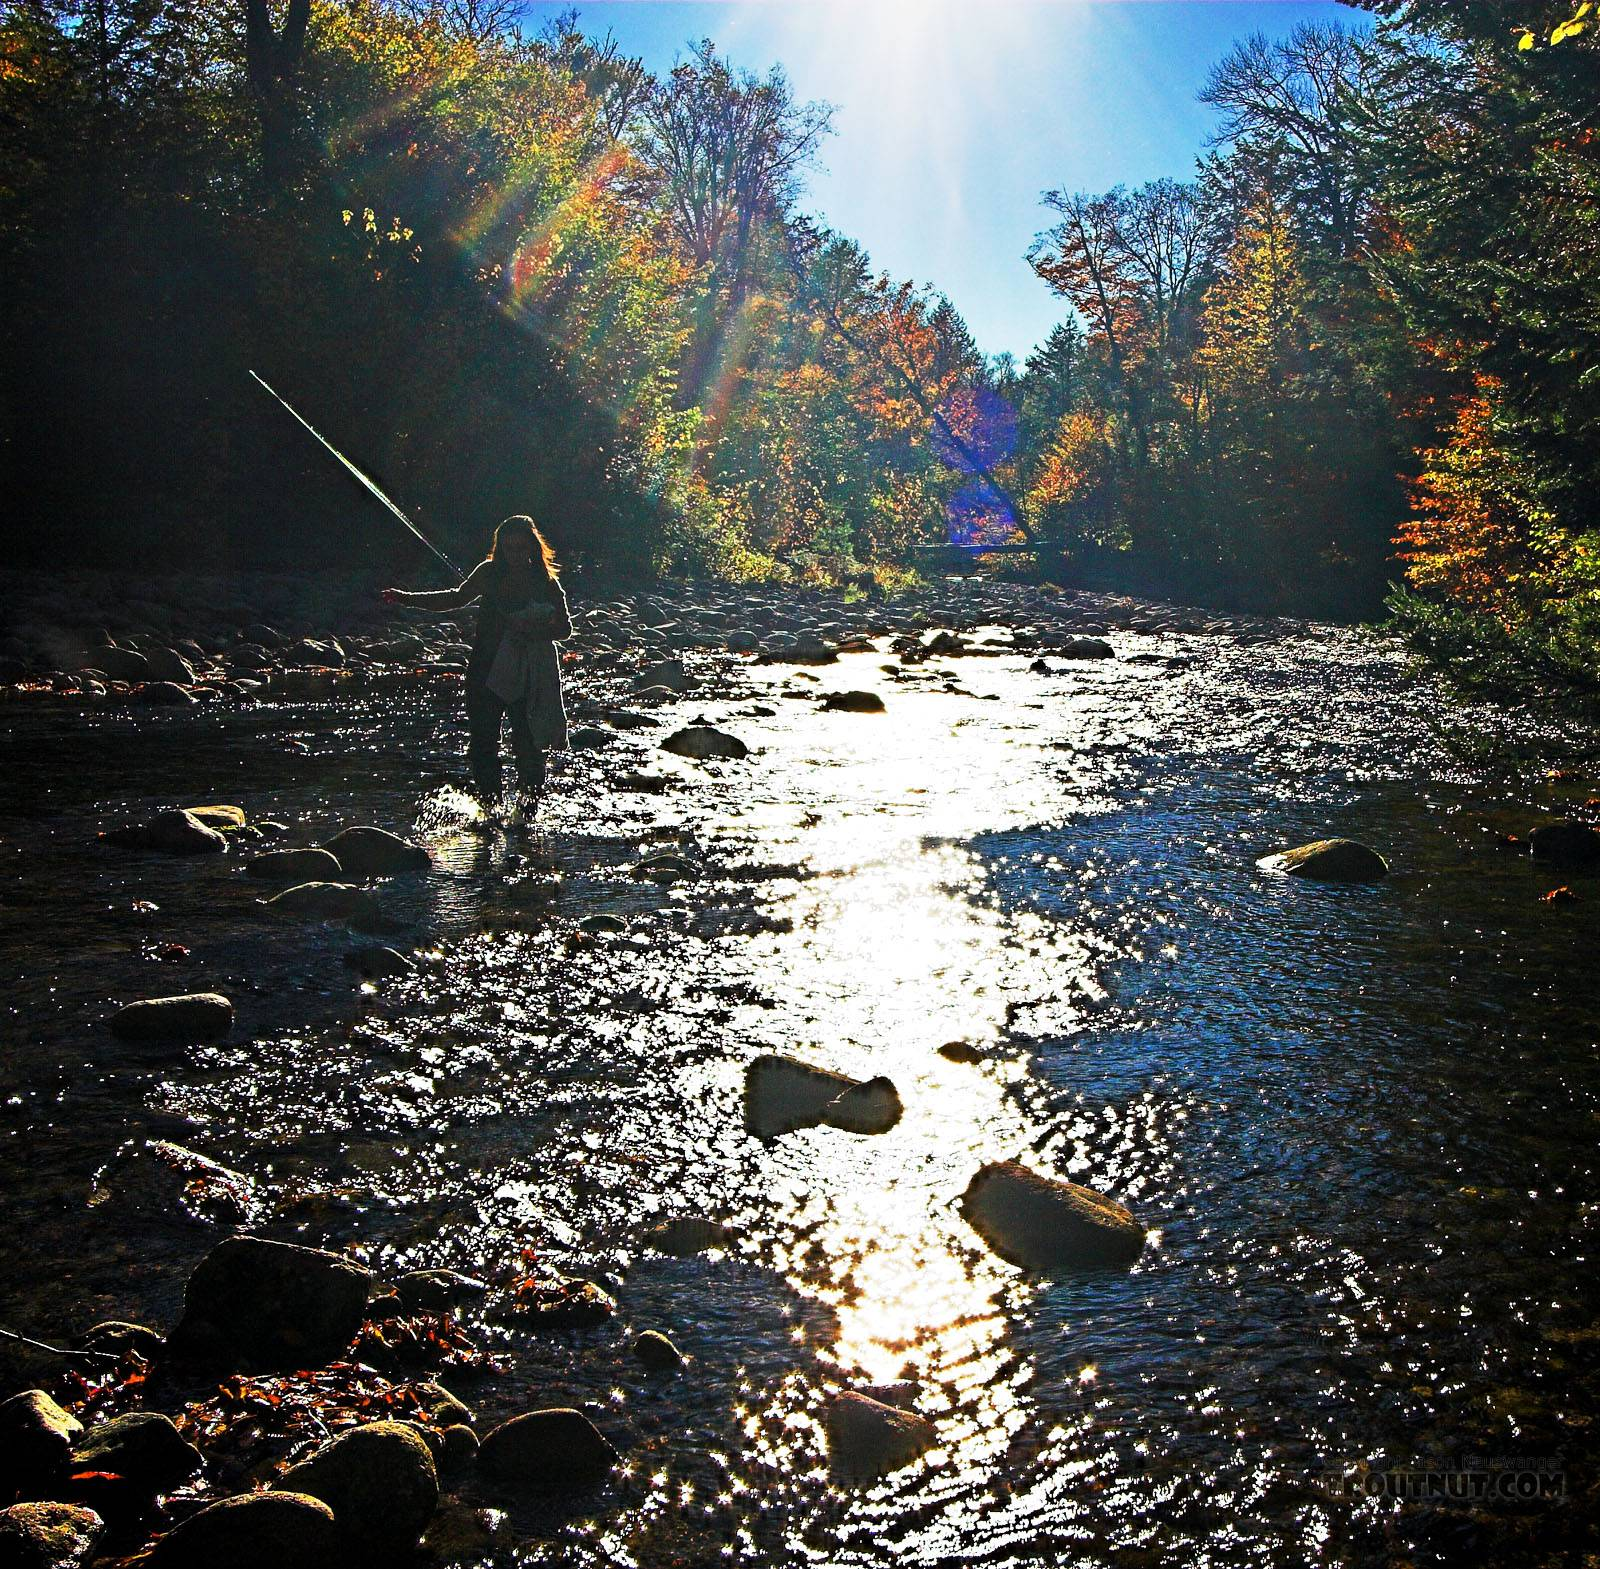 Lena wading across the riffle to catch up with me. From the Mystery Creek # 23 in New York.